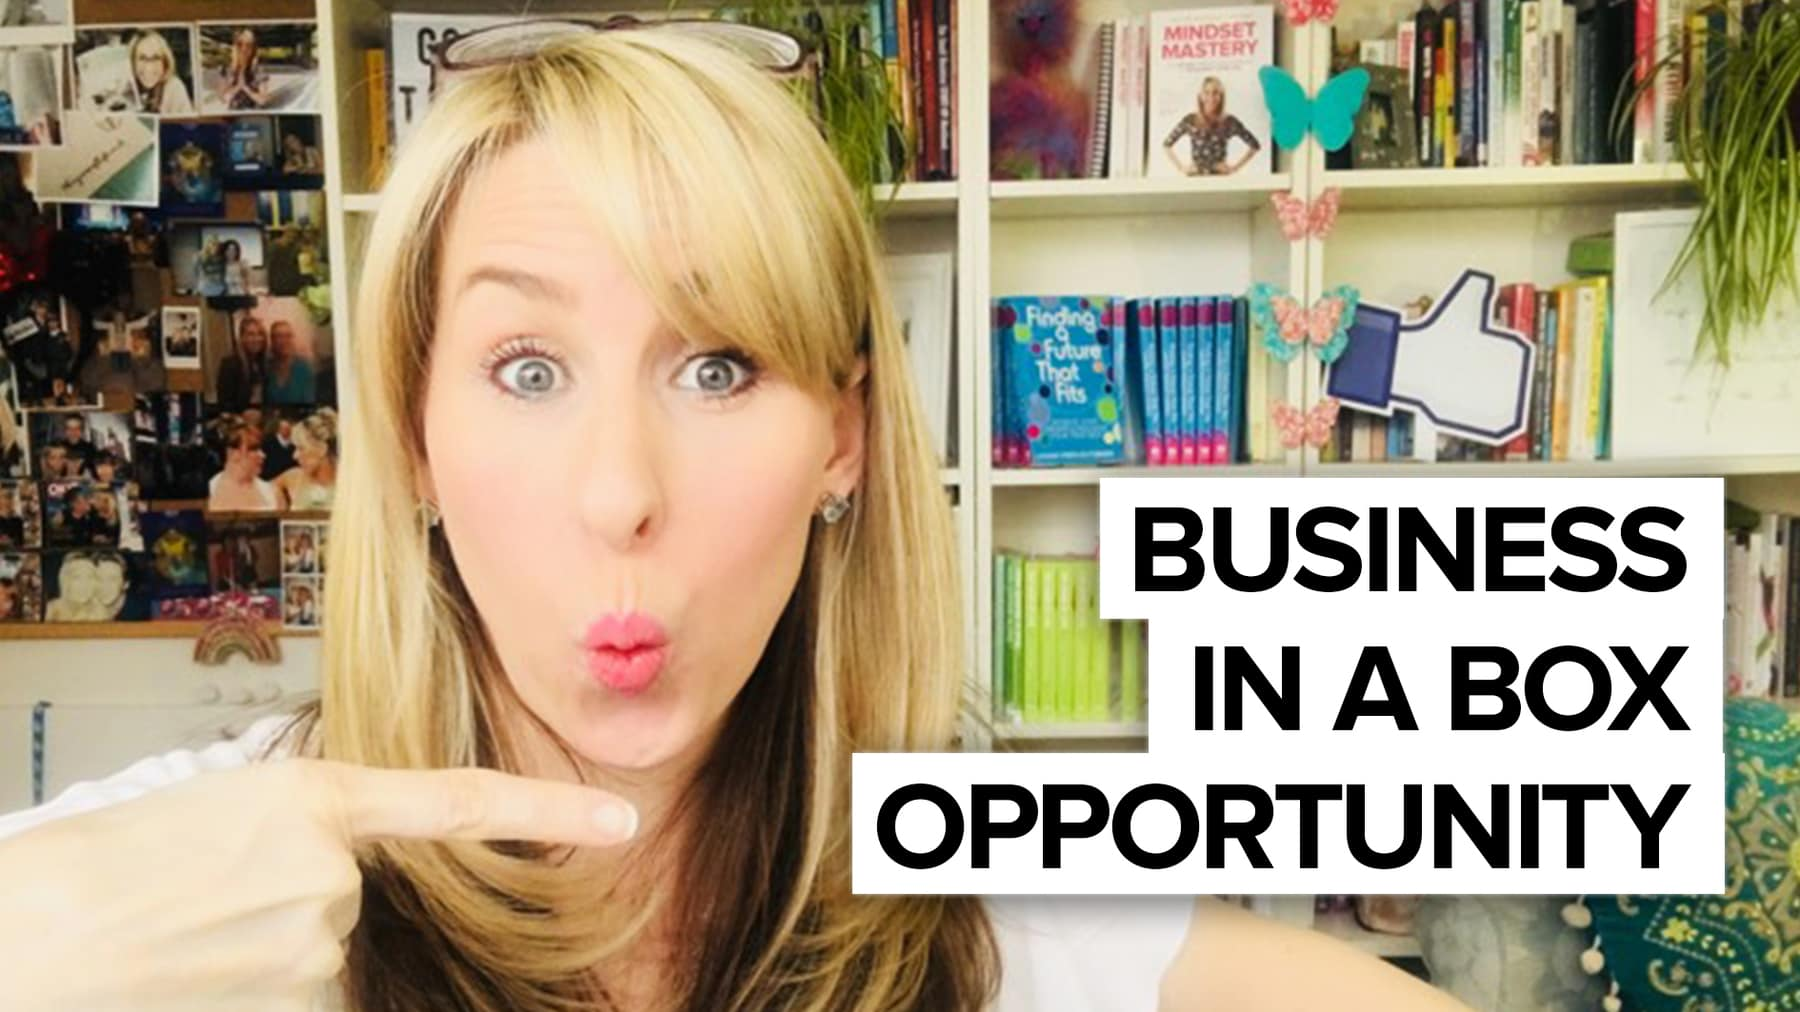 Business in a box opportunity – come into biz with me!